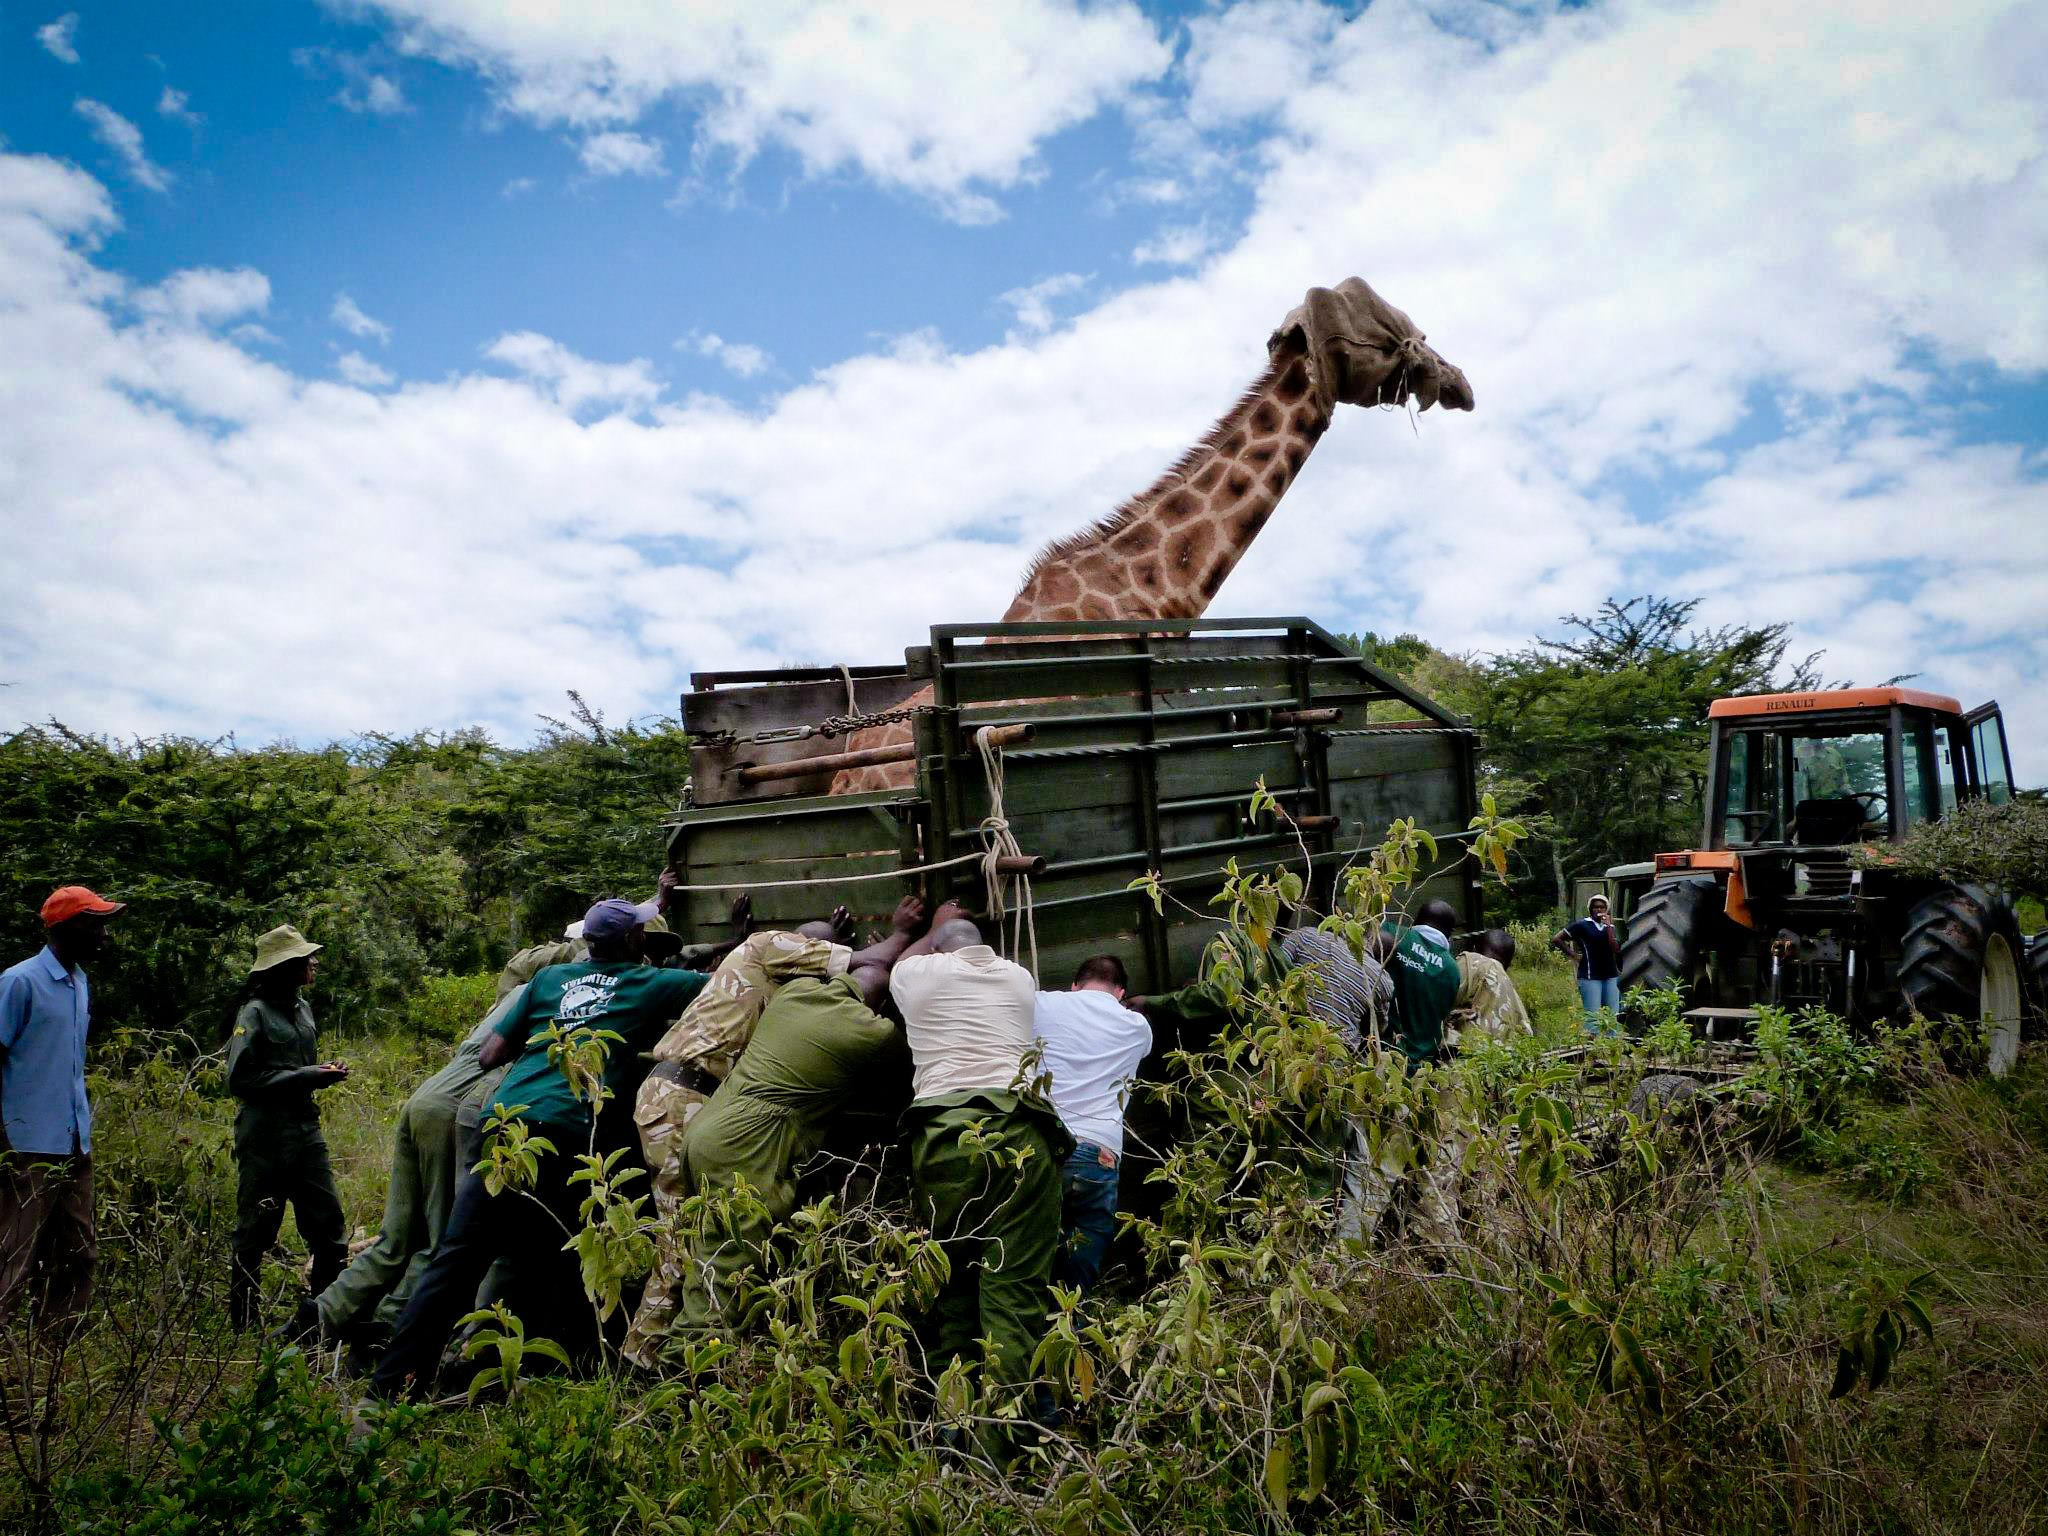 Volunteers from Projects Abroad are pictured with a giraffe they helped rescue whilst on their wildlife conservation volunteer work in Kenya.